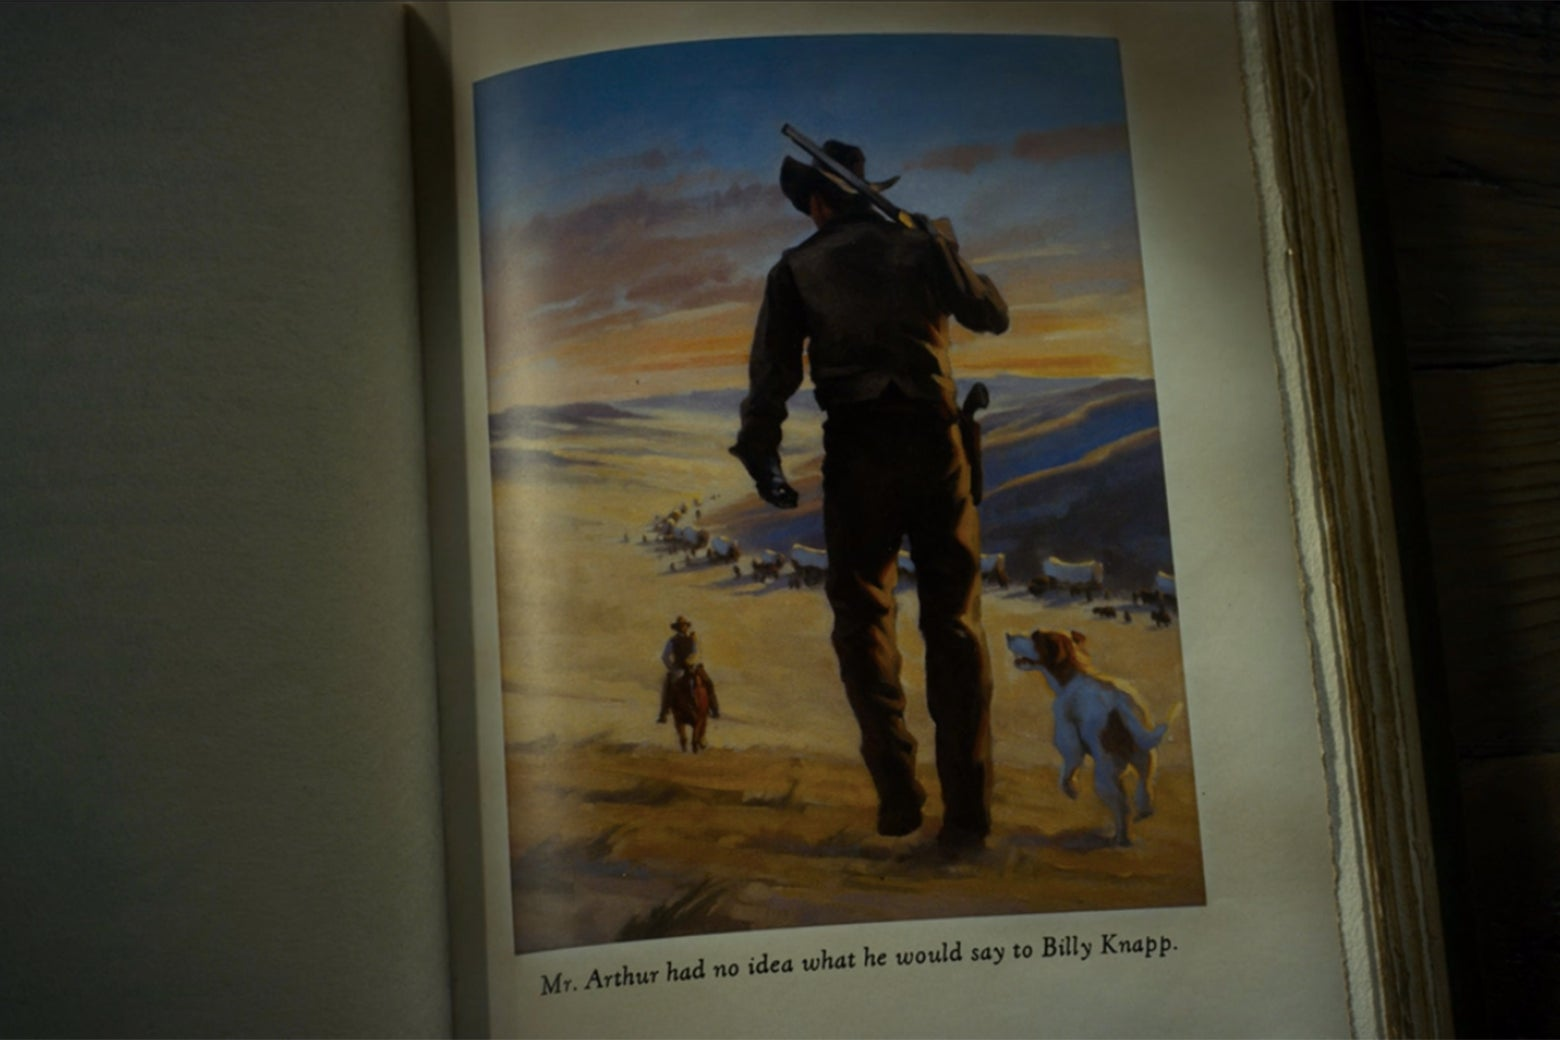 An illustration of a cowboy cresting a hill and walking away from the viewer toward a distant wagon train.